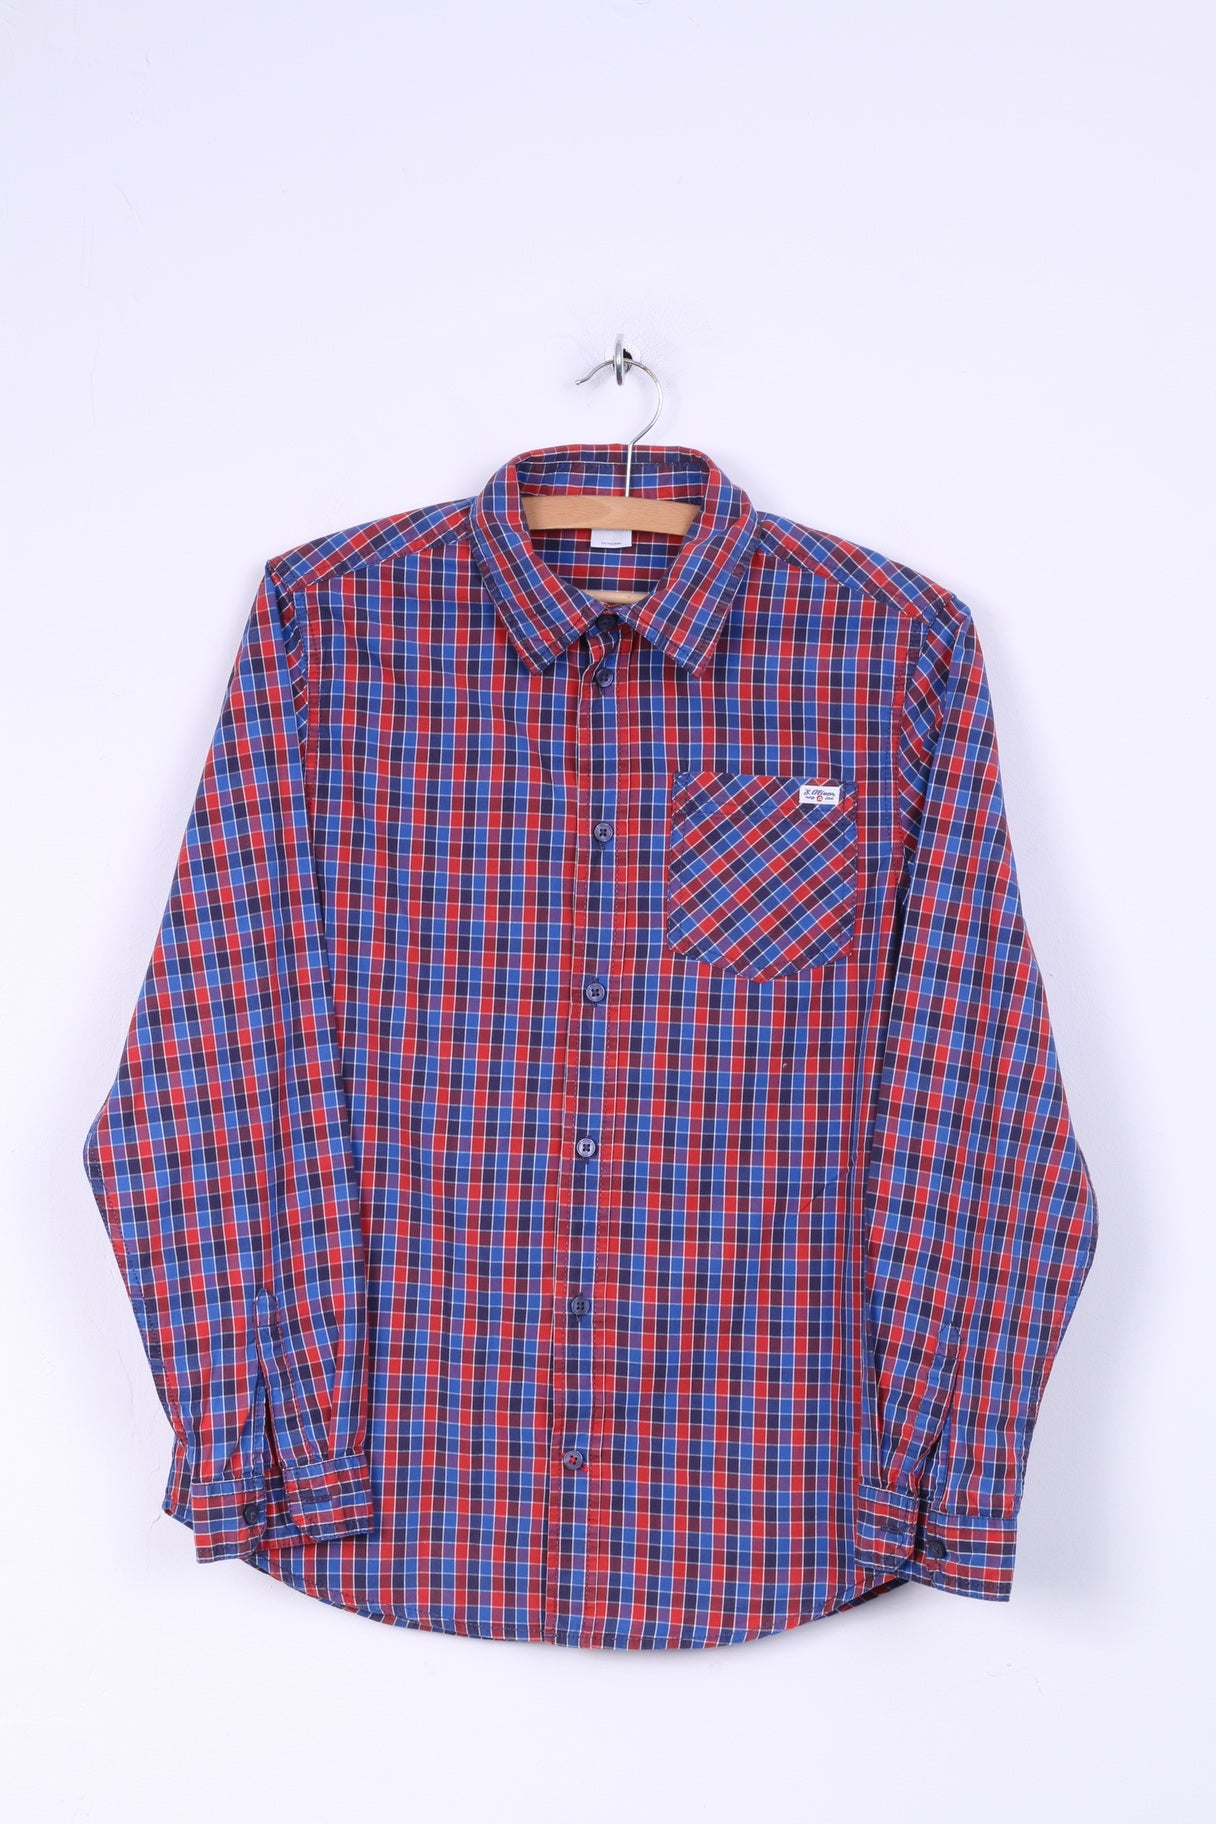 latest fashion clearance prices new images of S. Oliver Boys L 164 Casual Shirt Blue Red Cotton Checkered Long Sleeve